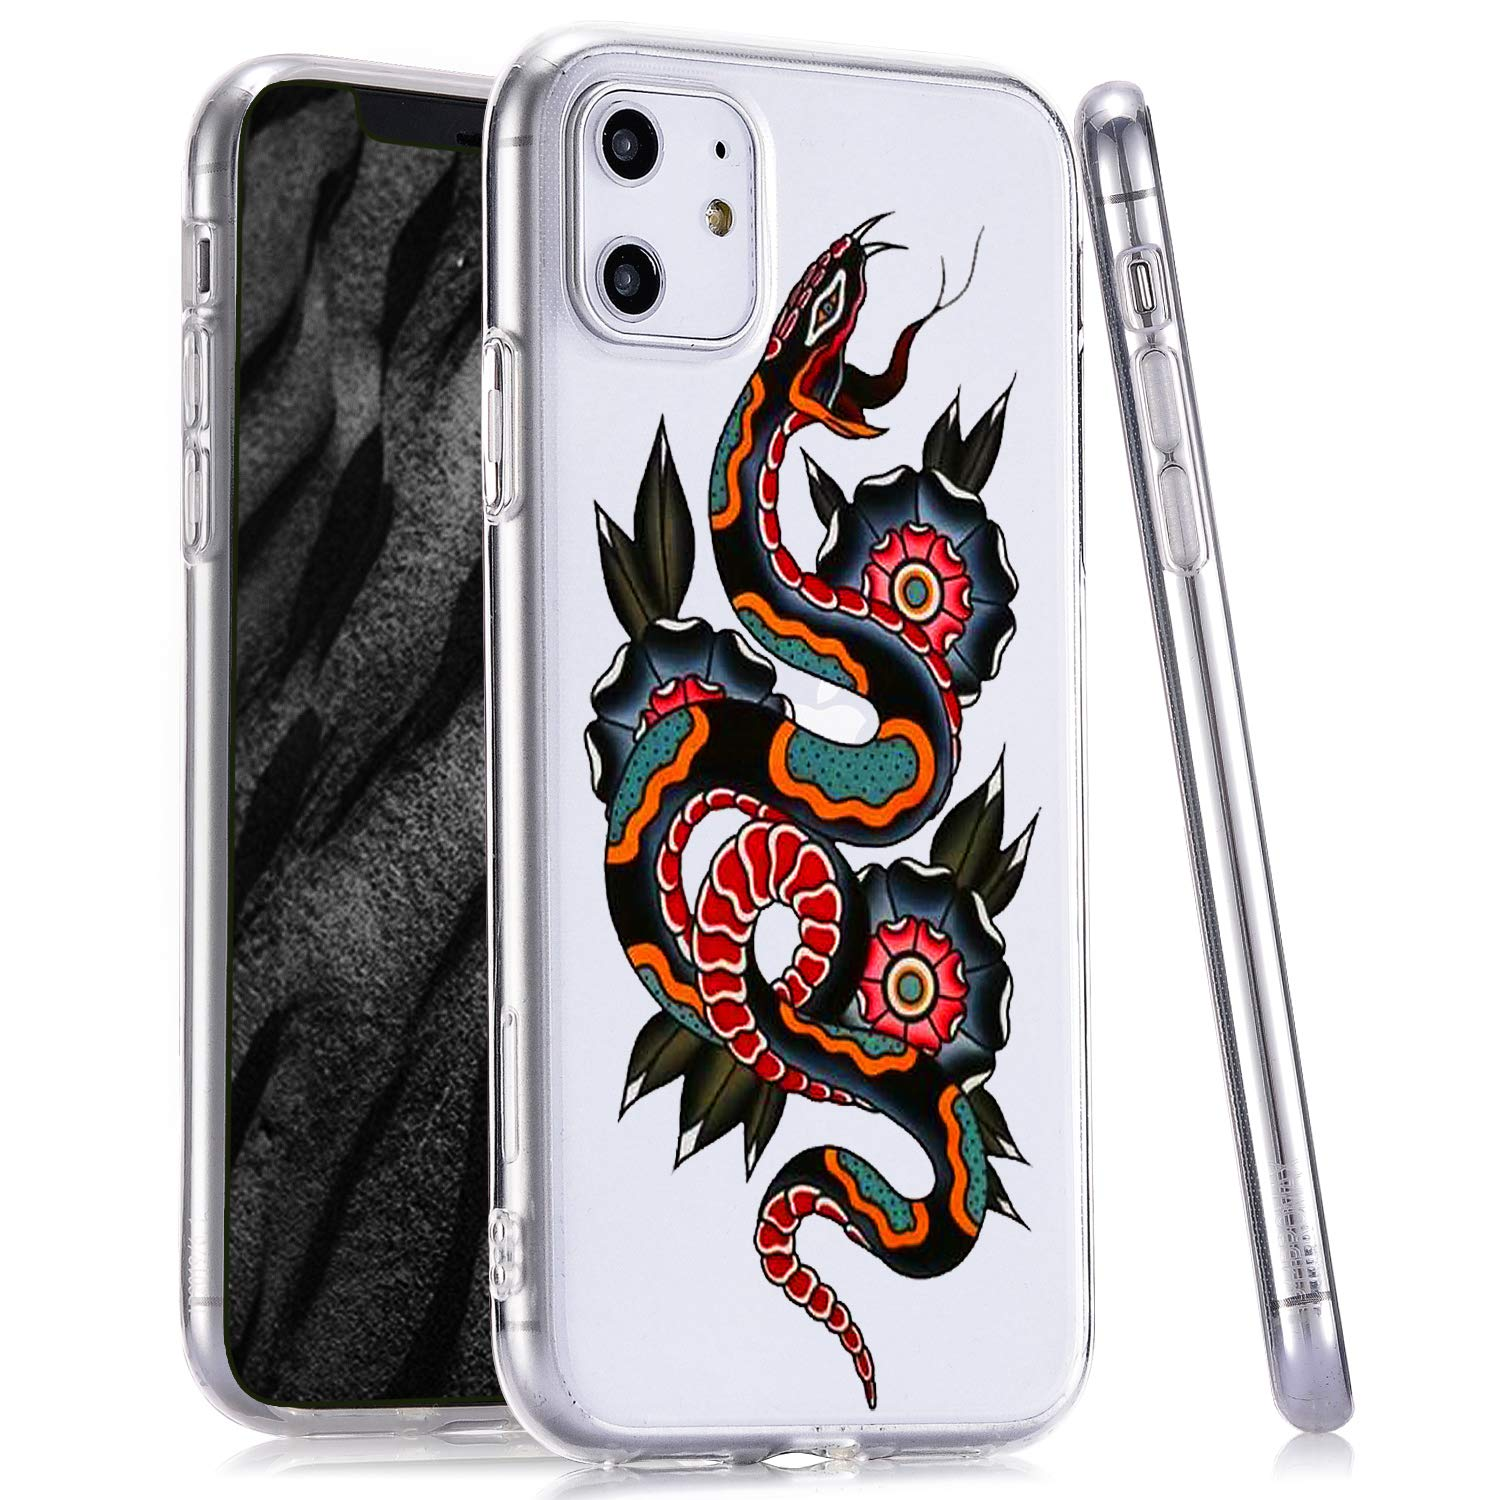 LuGeKe Snake Print Phone Case for iPhone 11, Slim Fit Animal Tattoo Pattern Clear TPU Cases Cover Scratch Resistant Flexible Transparent Skin Frame (Fashion Snake)